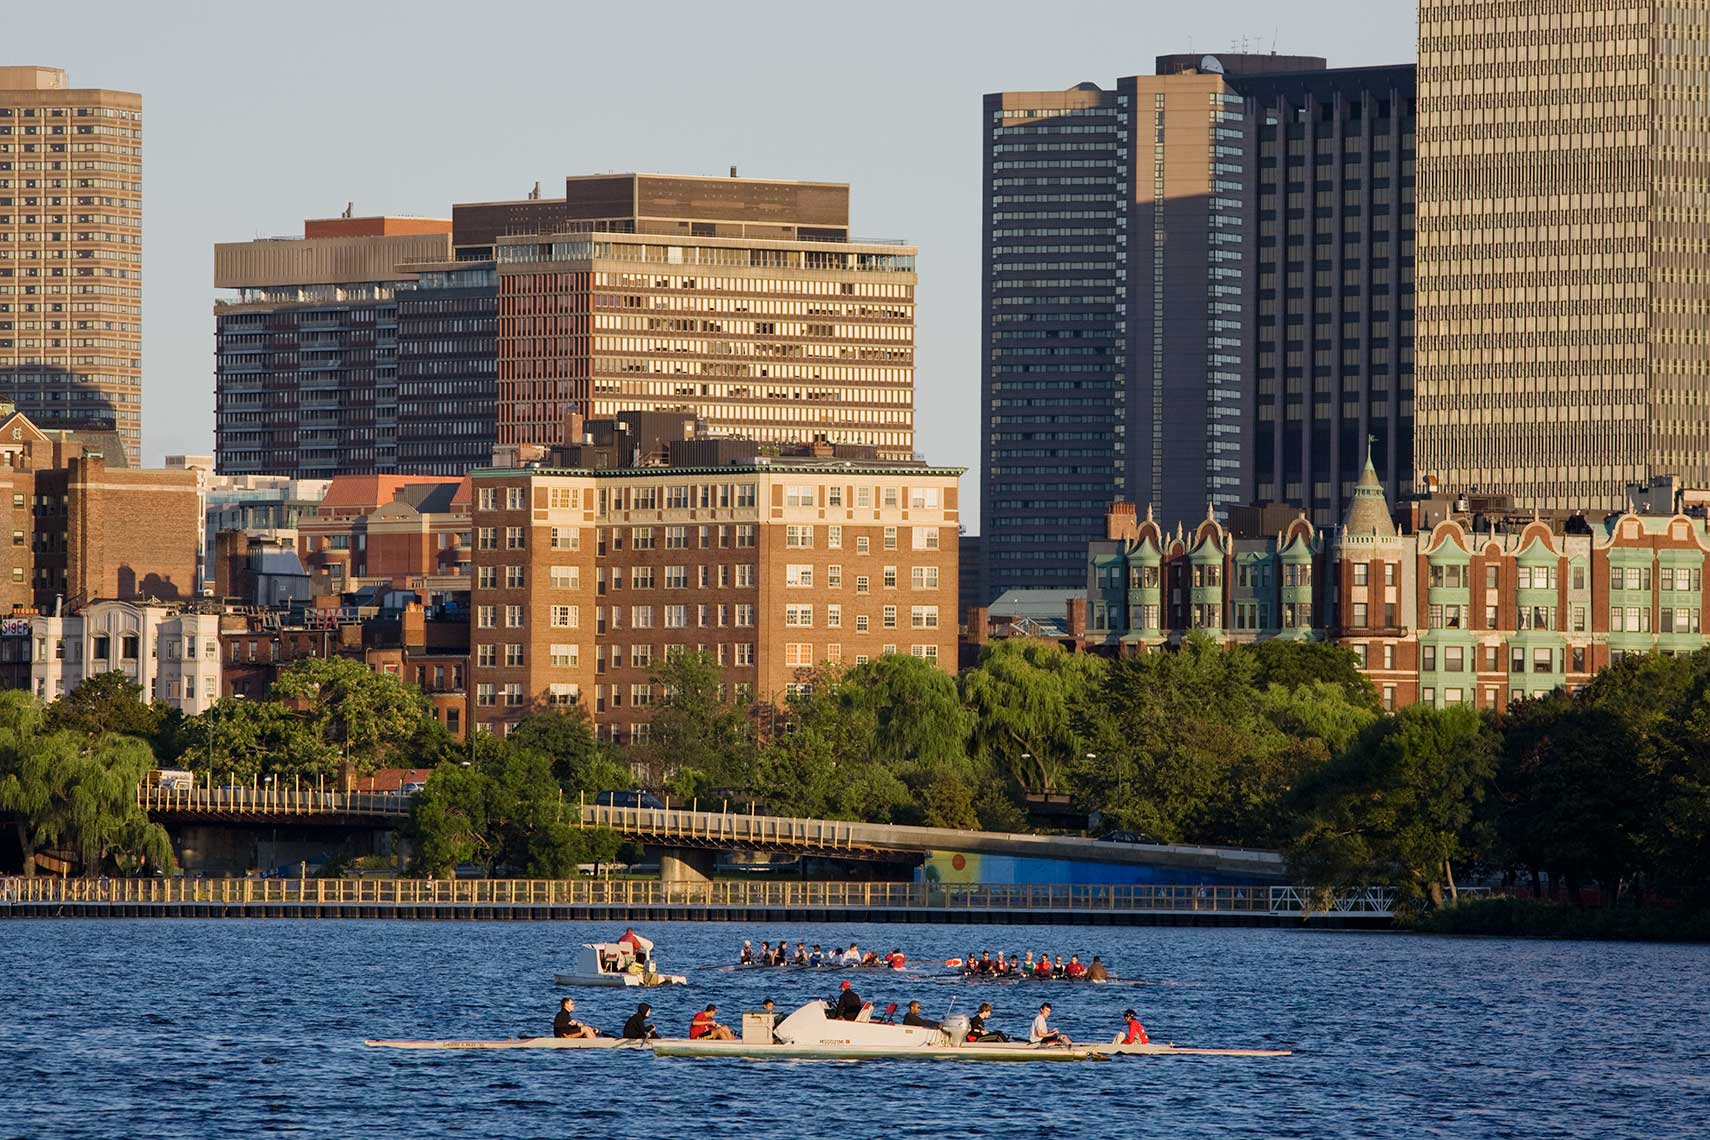 Scullers rowing on the Charles River with Barnes Mansion in the background